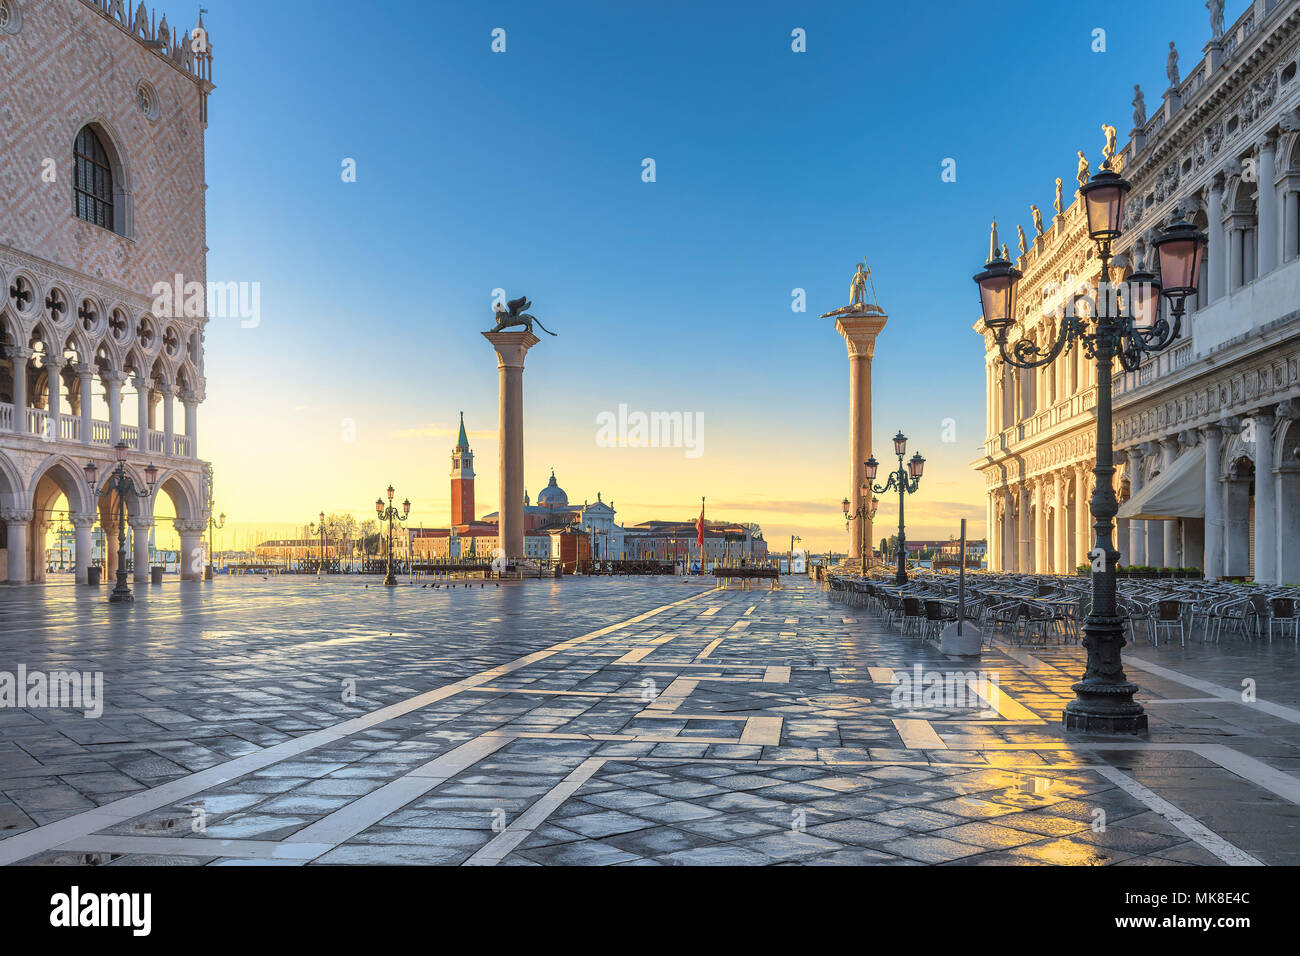 Venice at sunrise. San Marco, Ilaly. - Stock Image